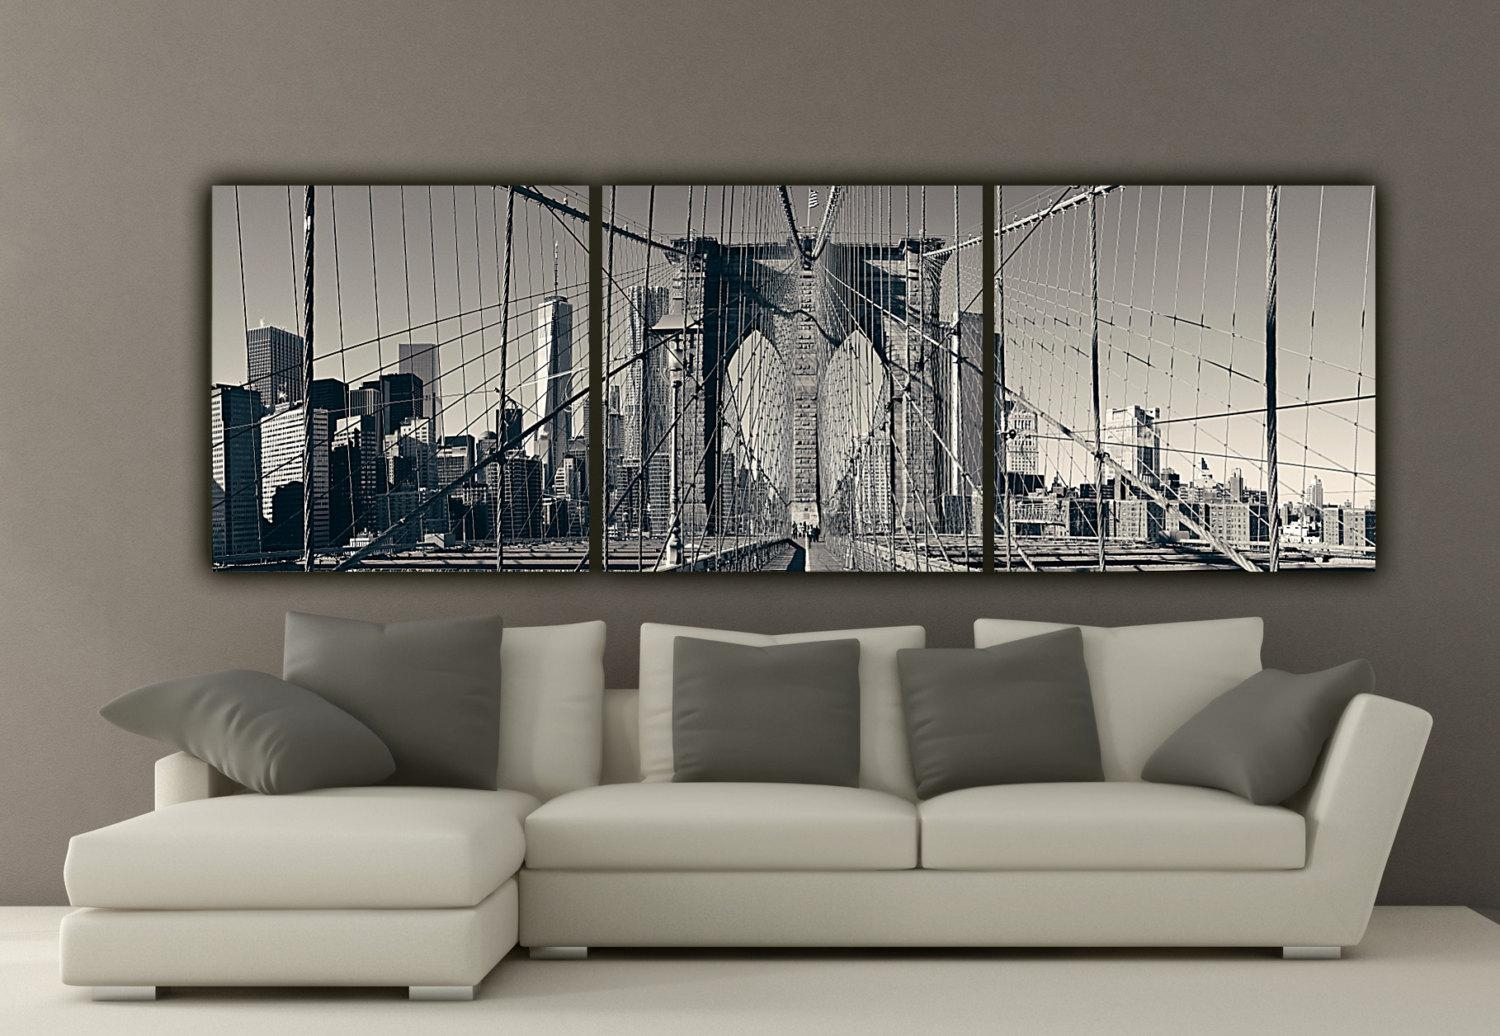 New York Brooklyn Bridge Canvas Wall Art Black And White New with regard to Big Canvas Wall Art